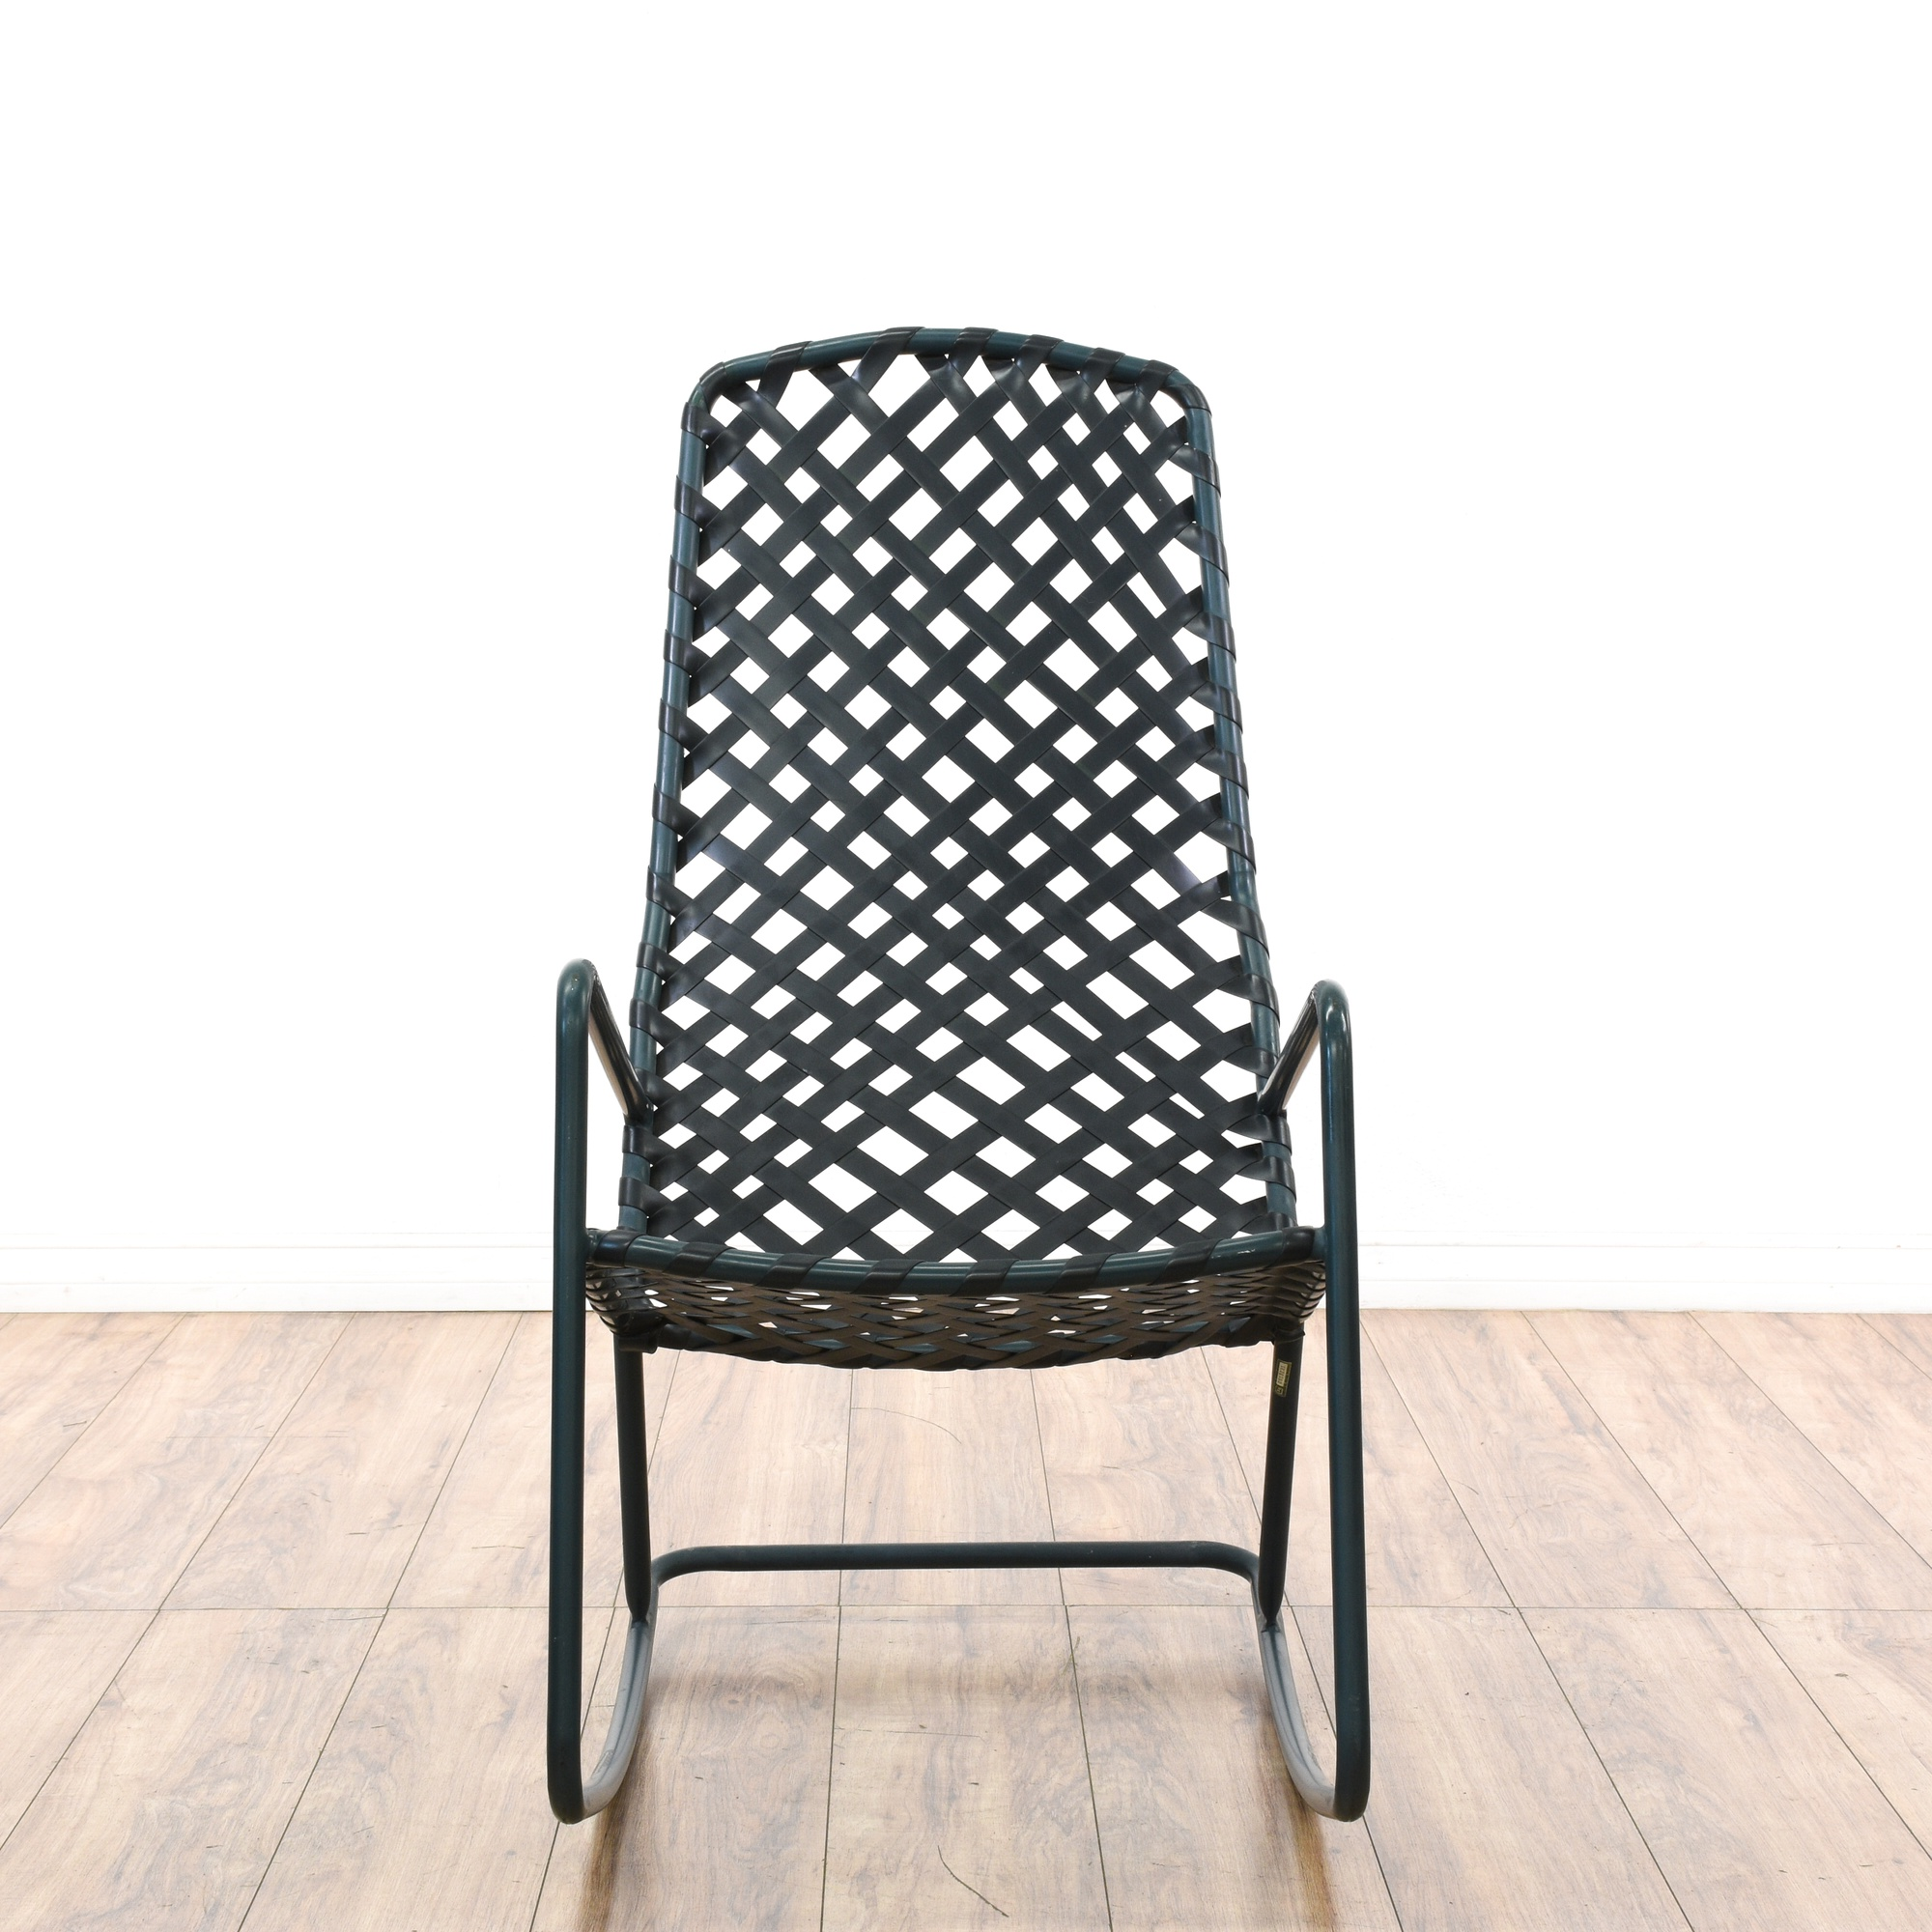 """Brown Jordan"" Tamiami Metal Outdoor Rocking Chair"